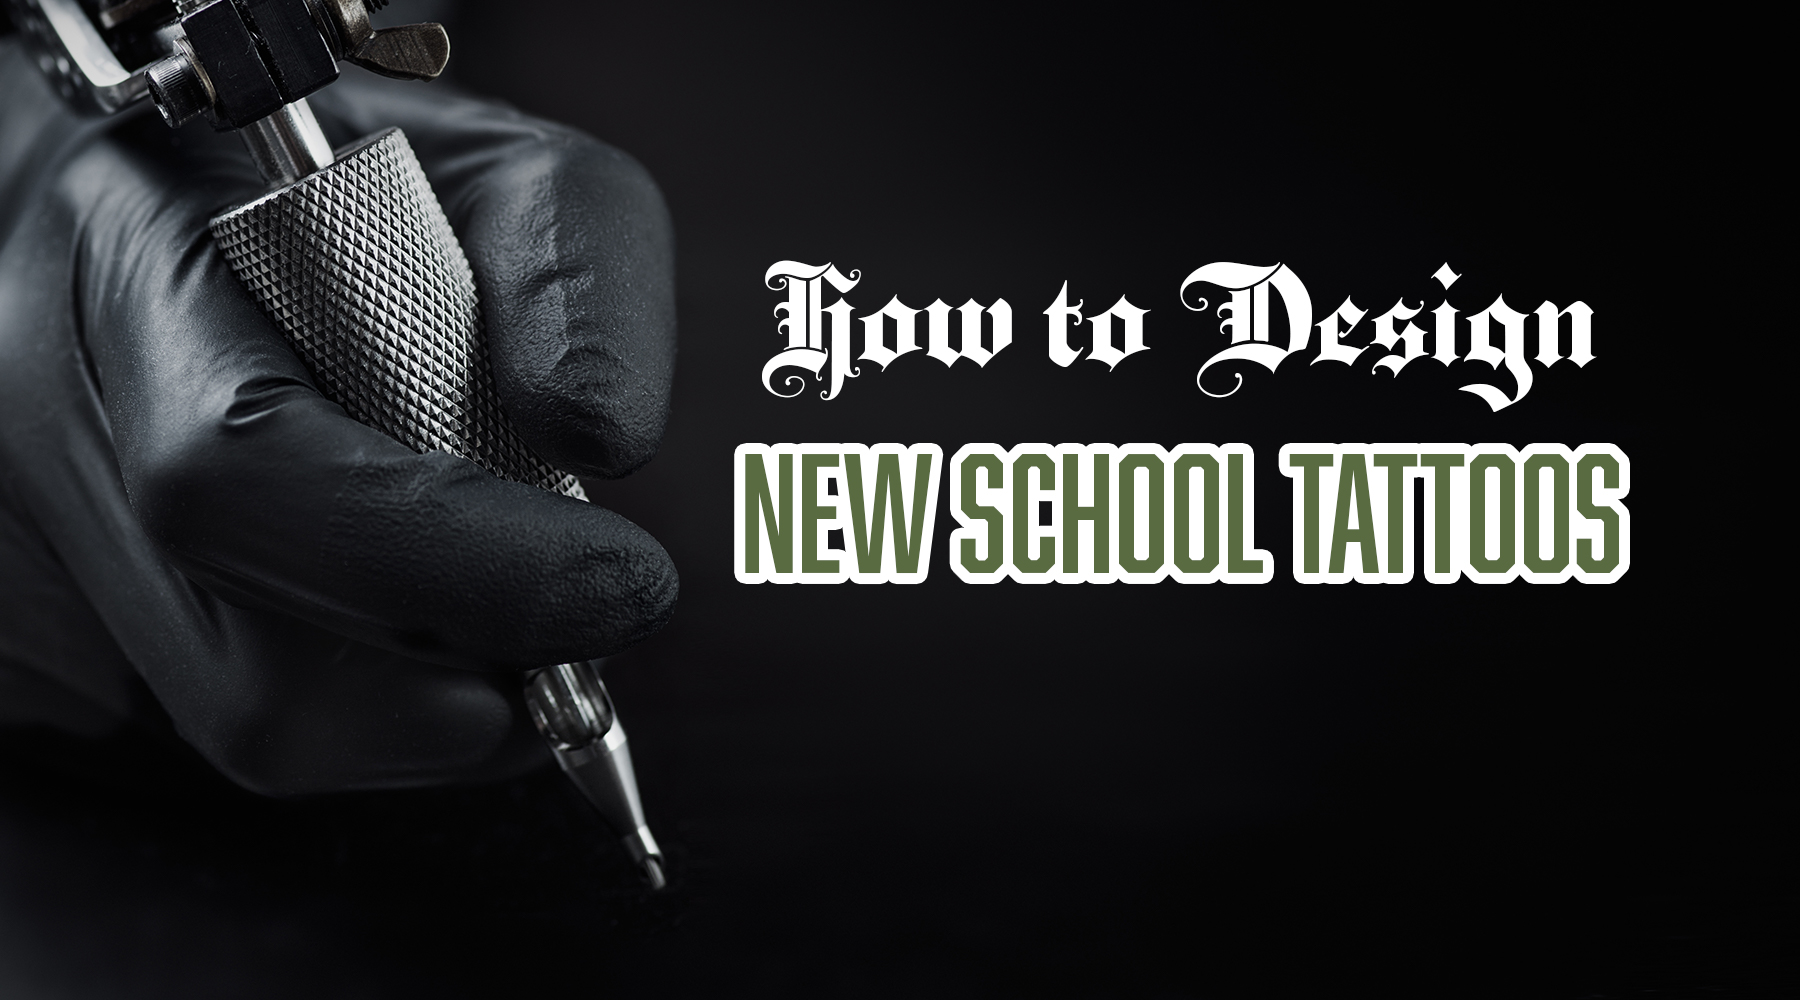 You want a tattoo that looks like an acid trip on your skin, but what do you call that as a tattoo style? You, my friend, are talking about a New School tattoo. Not every tattoo designed in this style...